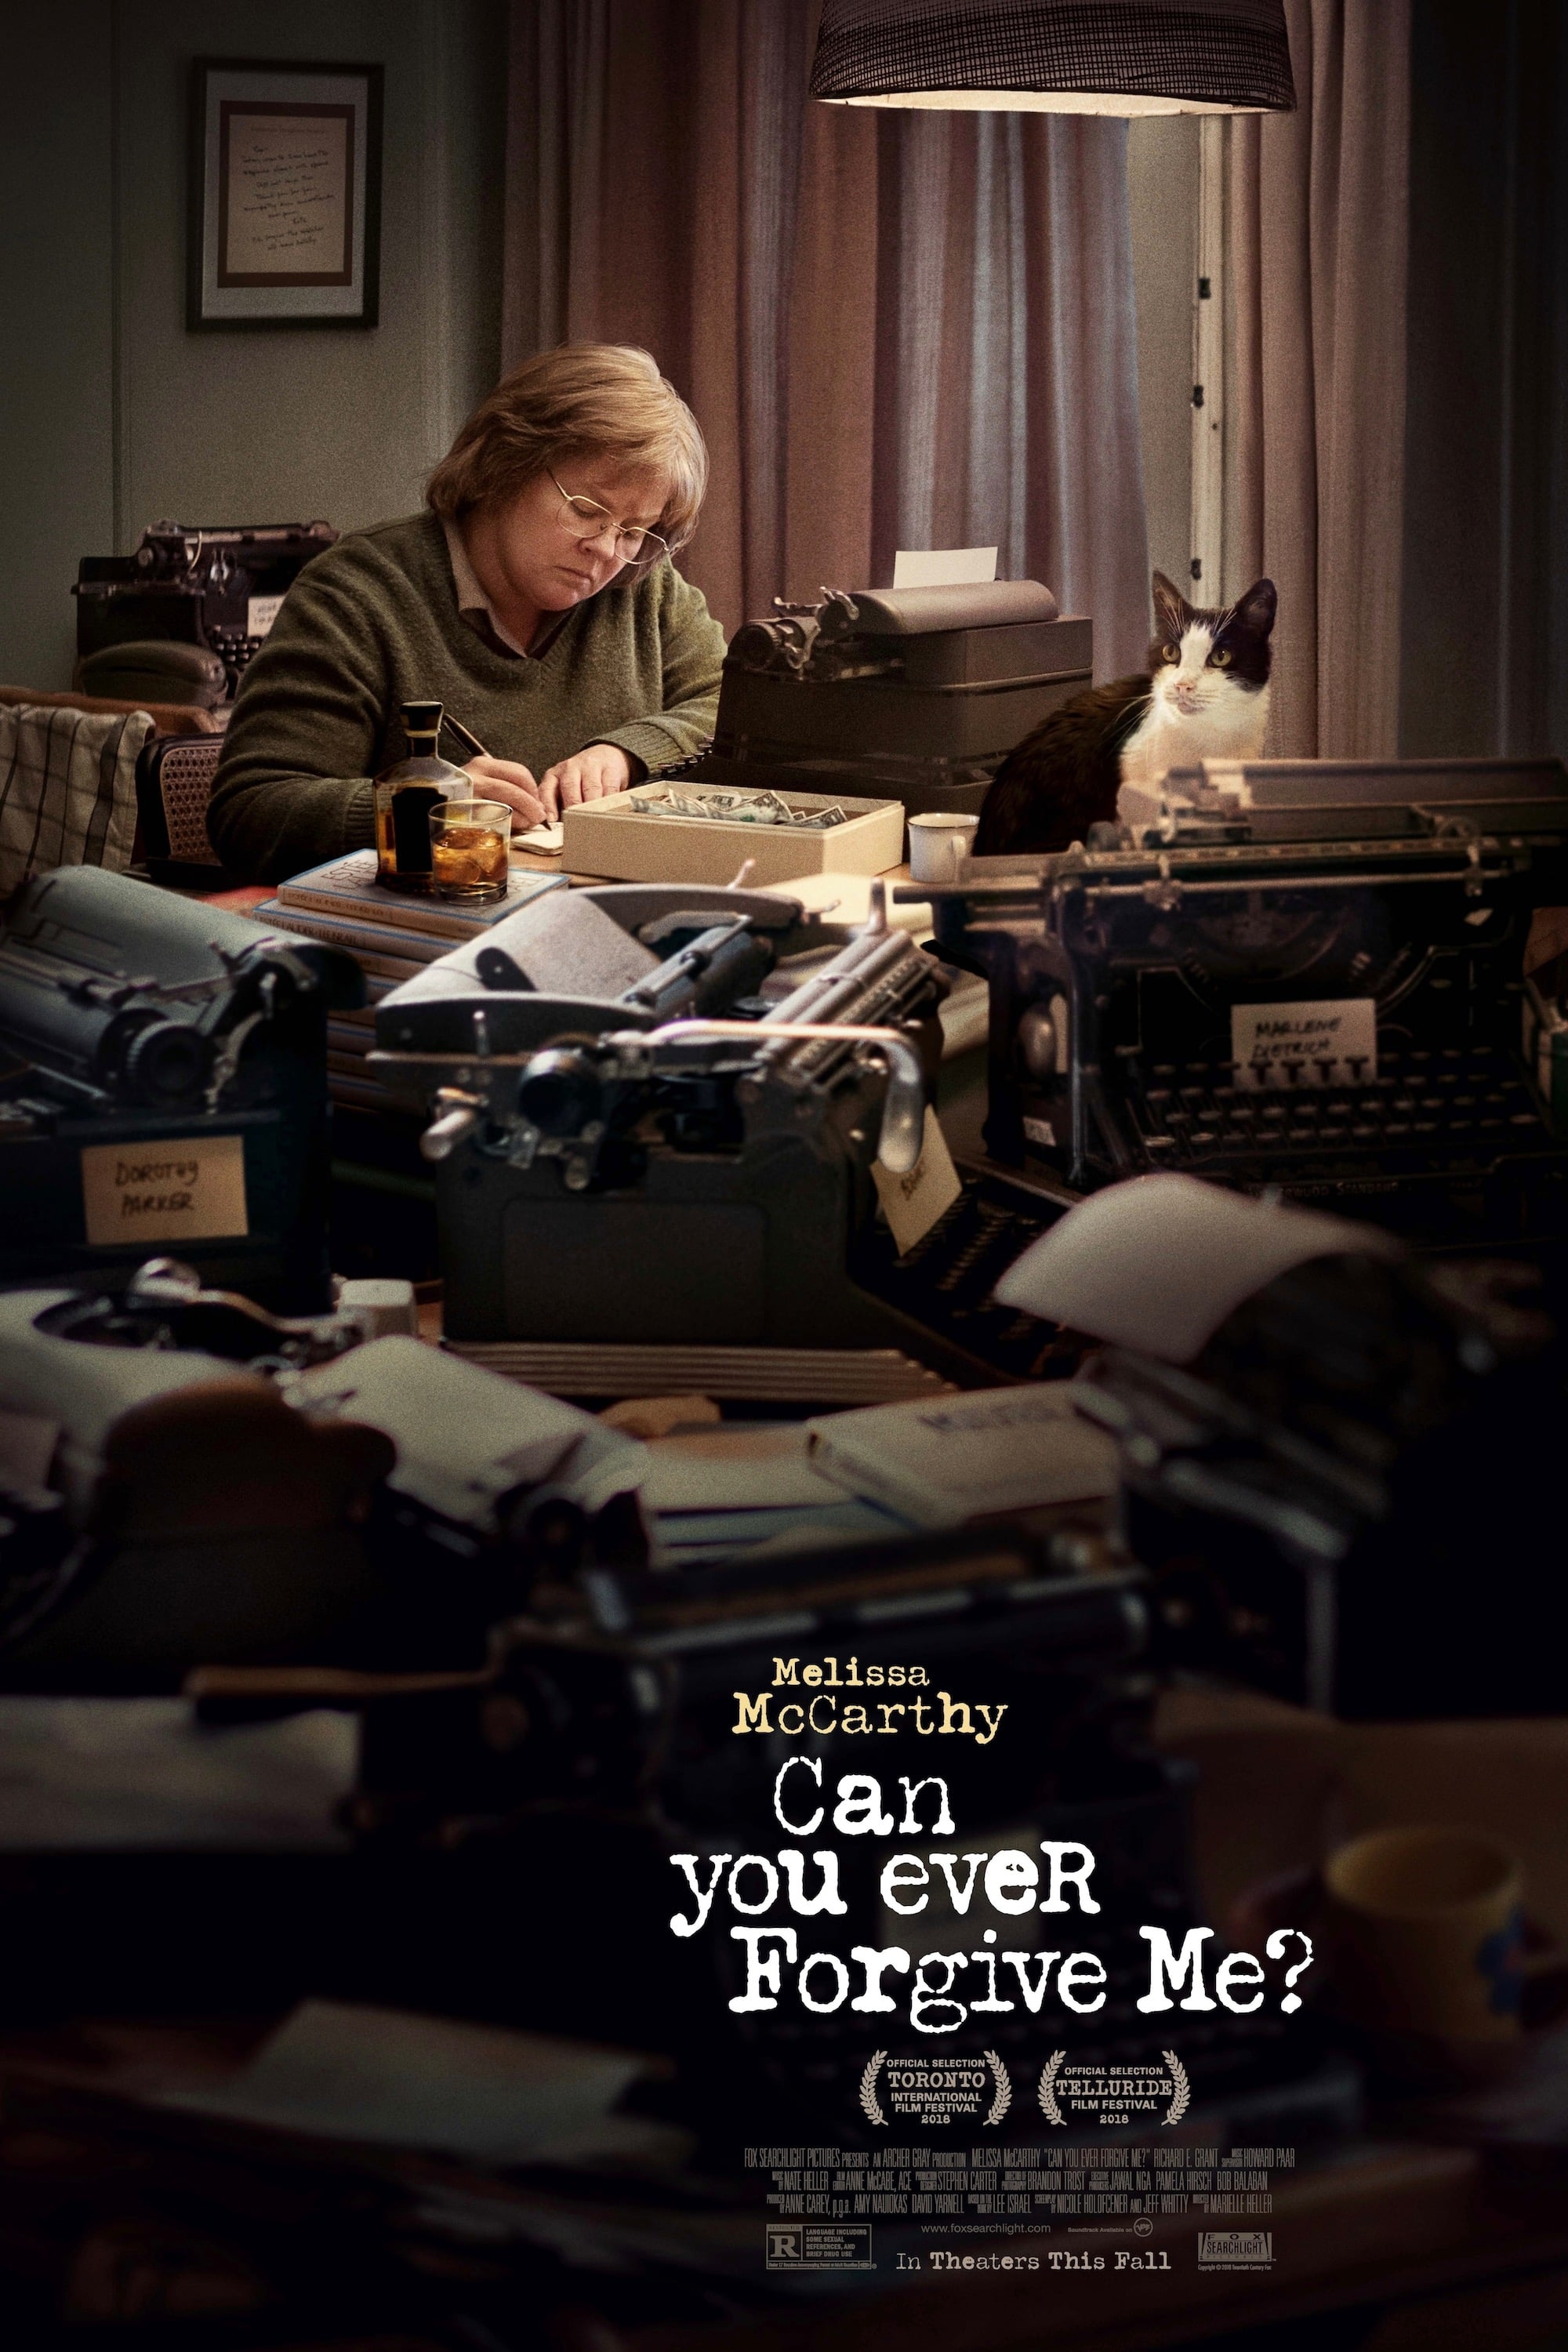 image for Can You Ever Forgive Me?